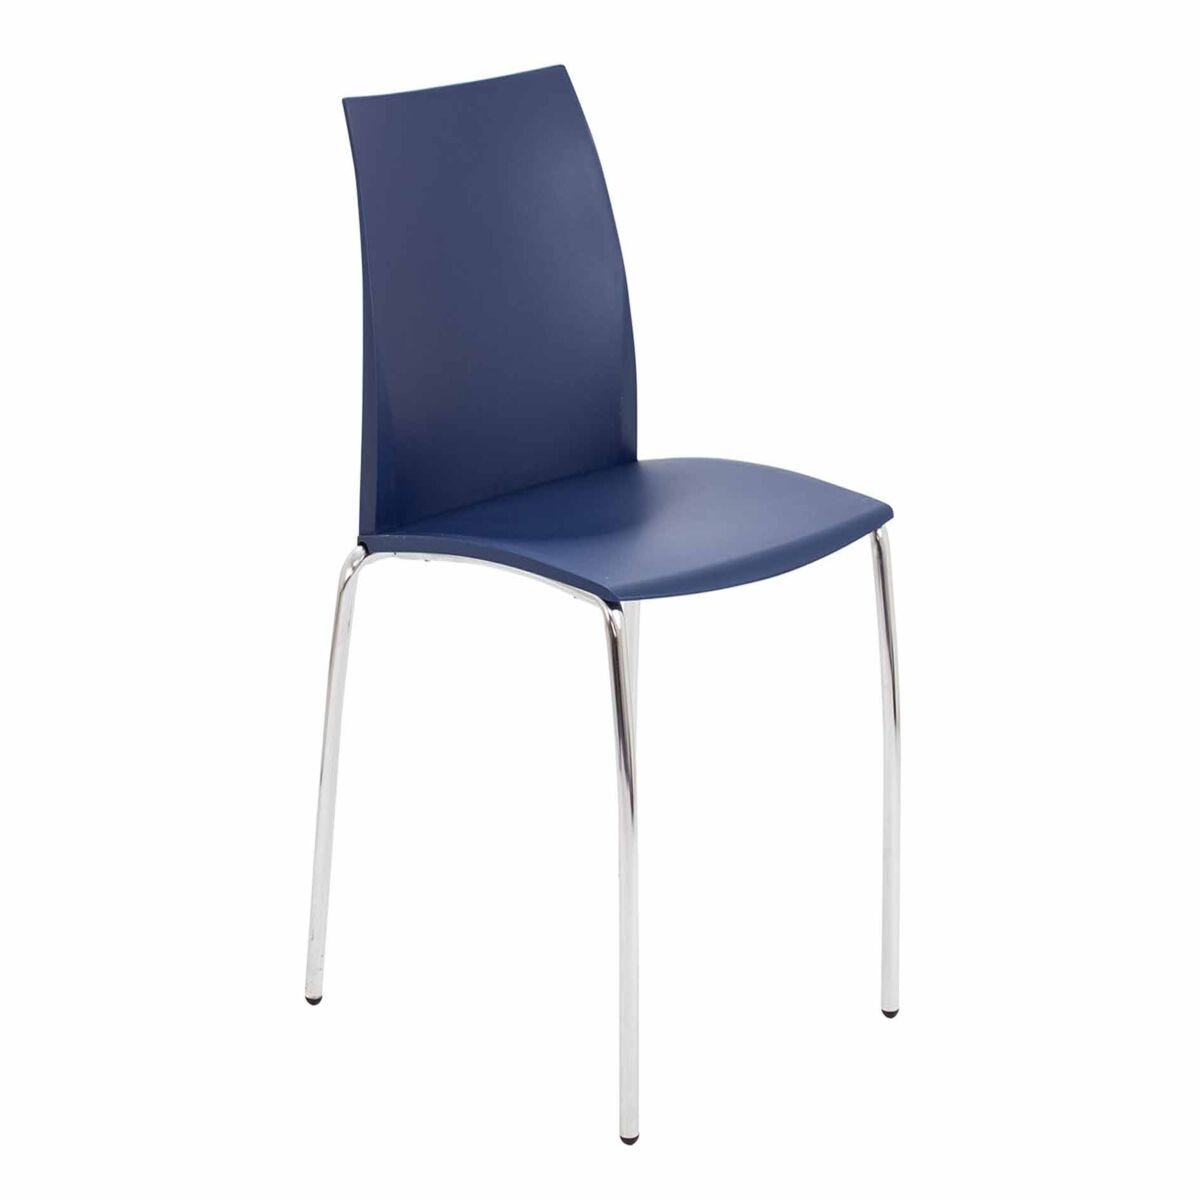 TC Office Adapt 4 Chrome Leg Stackable Chair